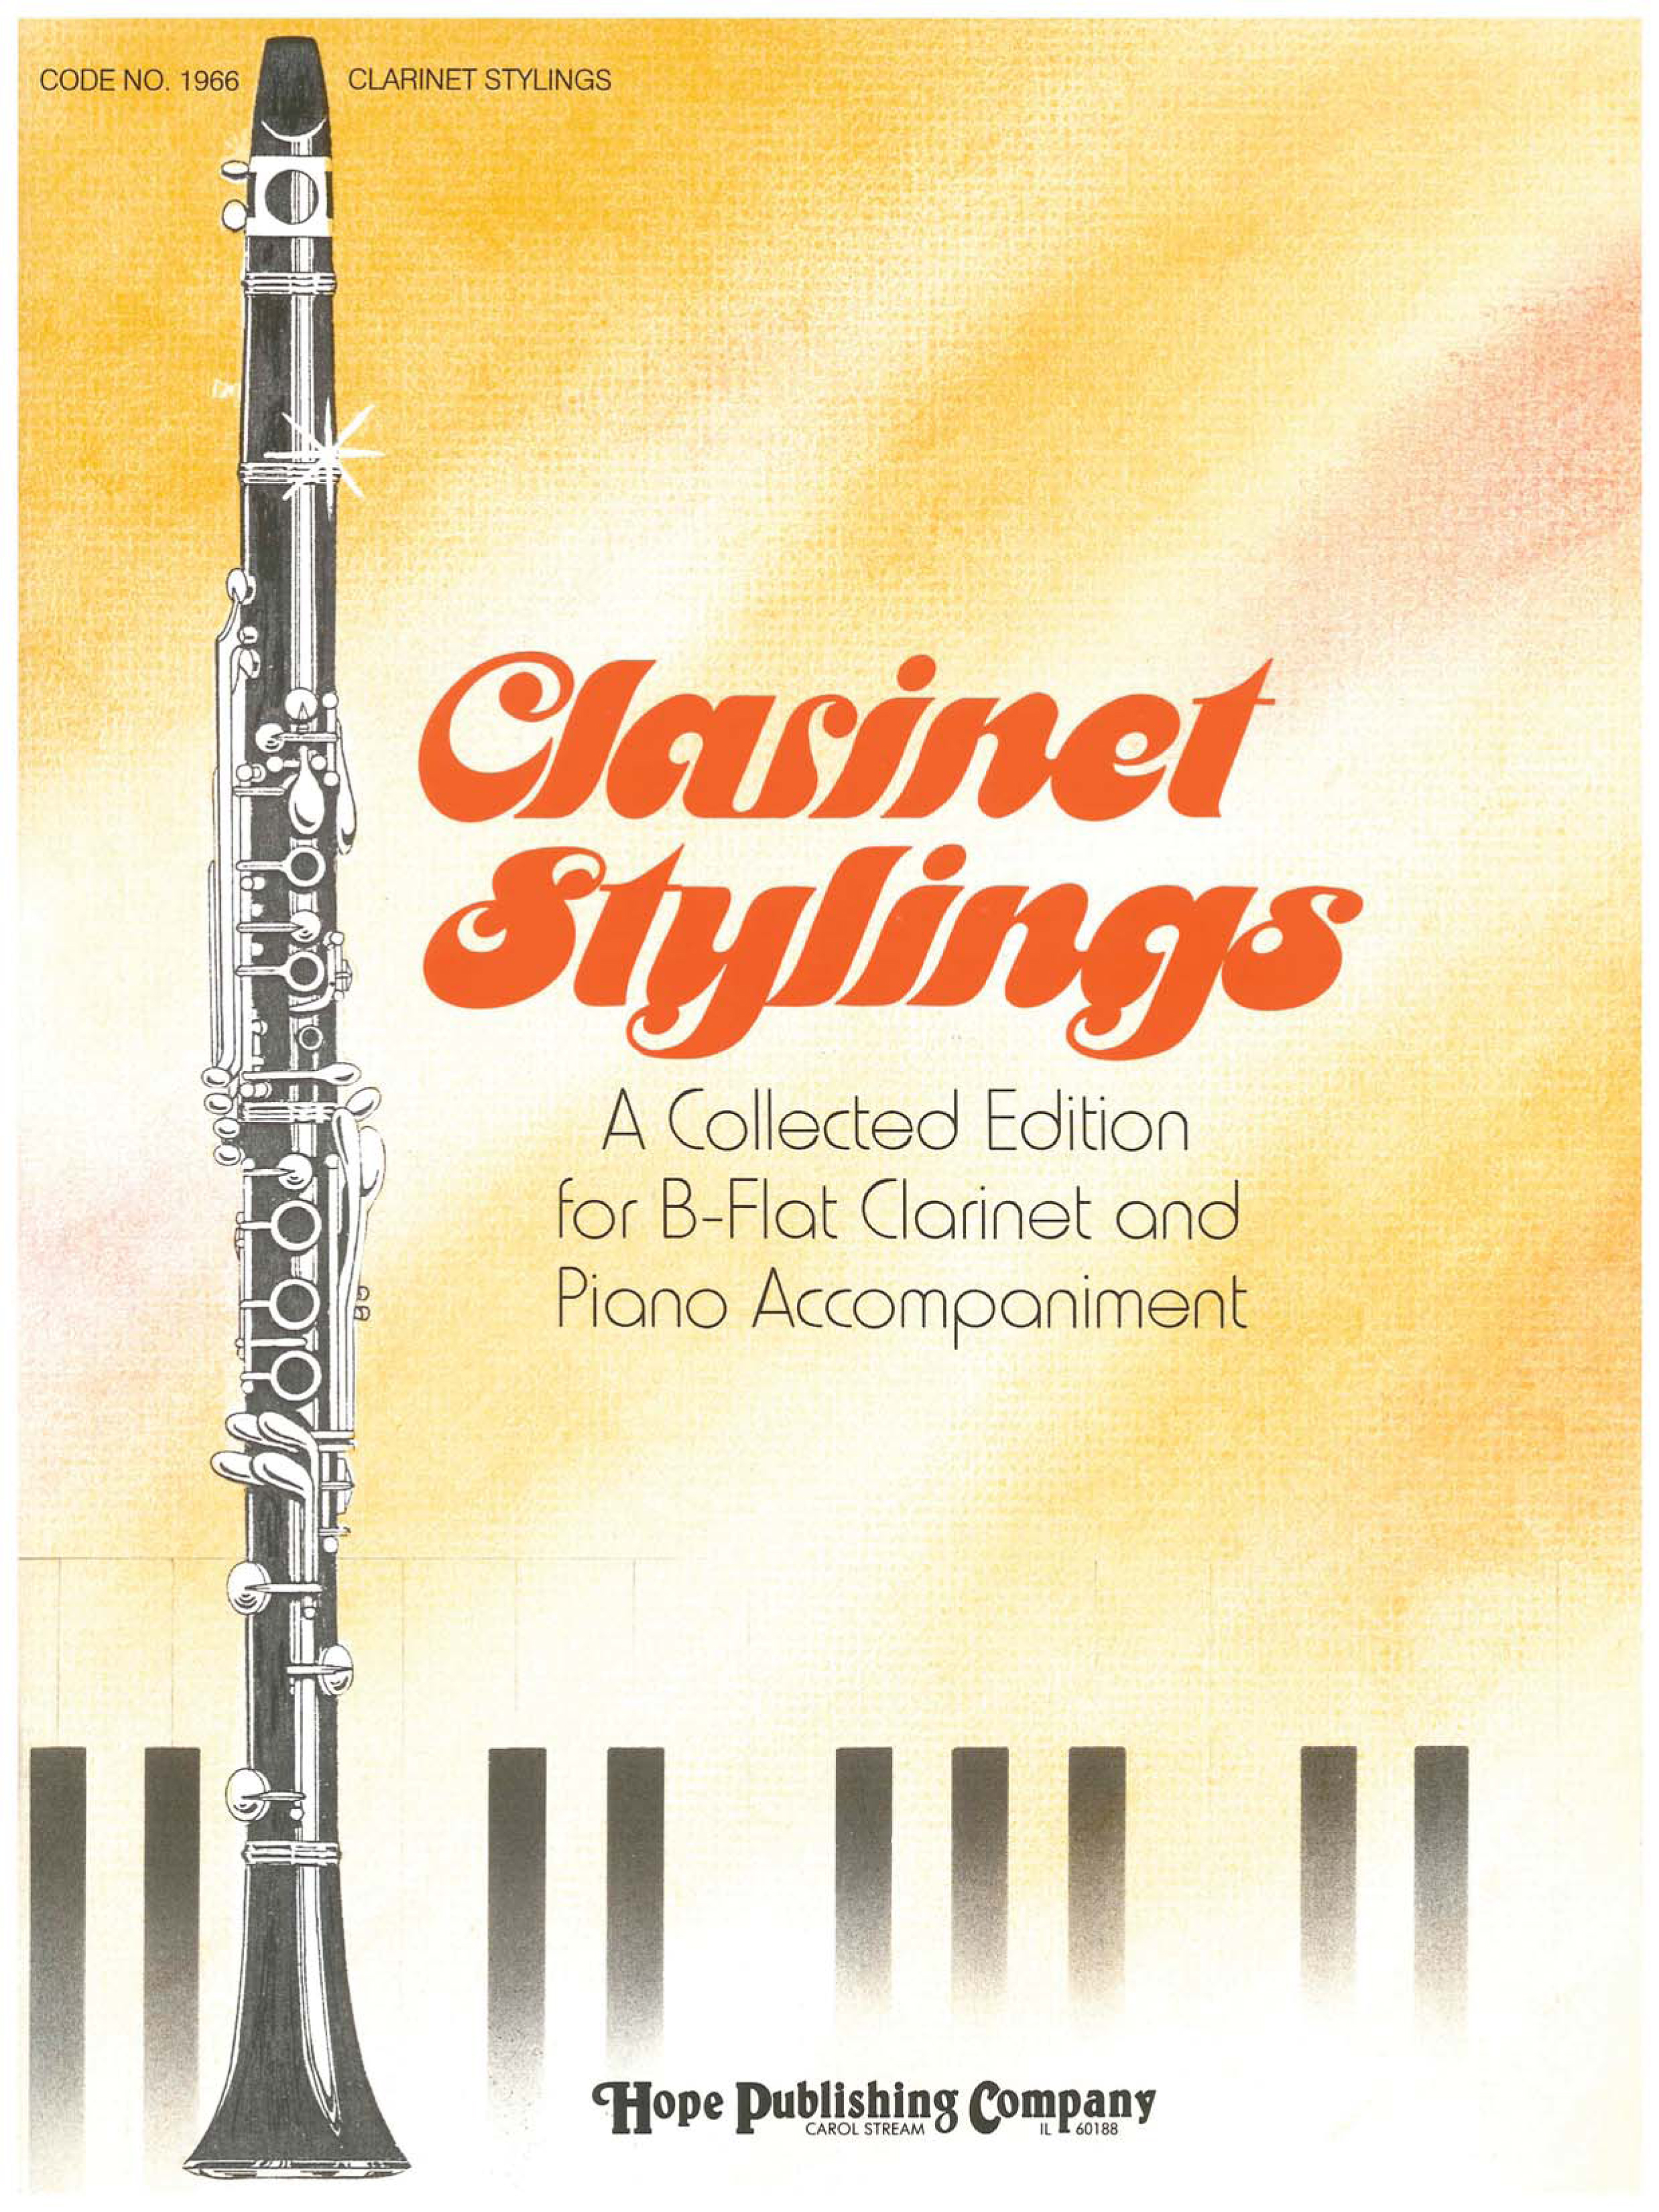 Clarinet Stylings Cover Image